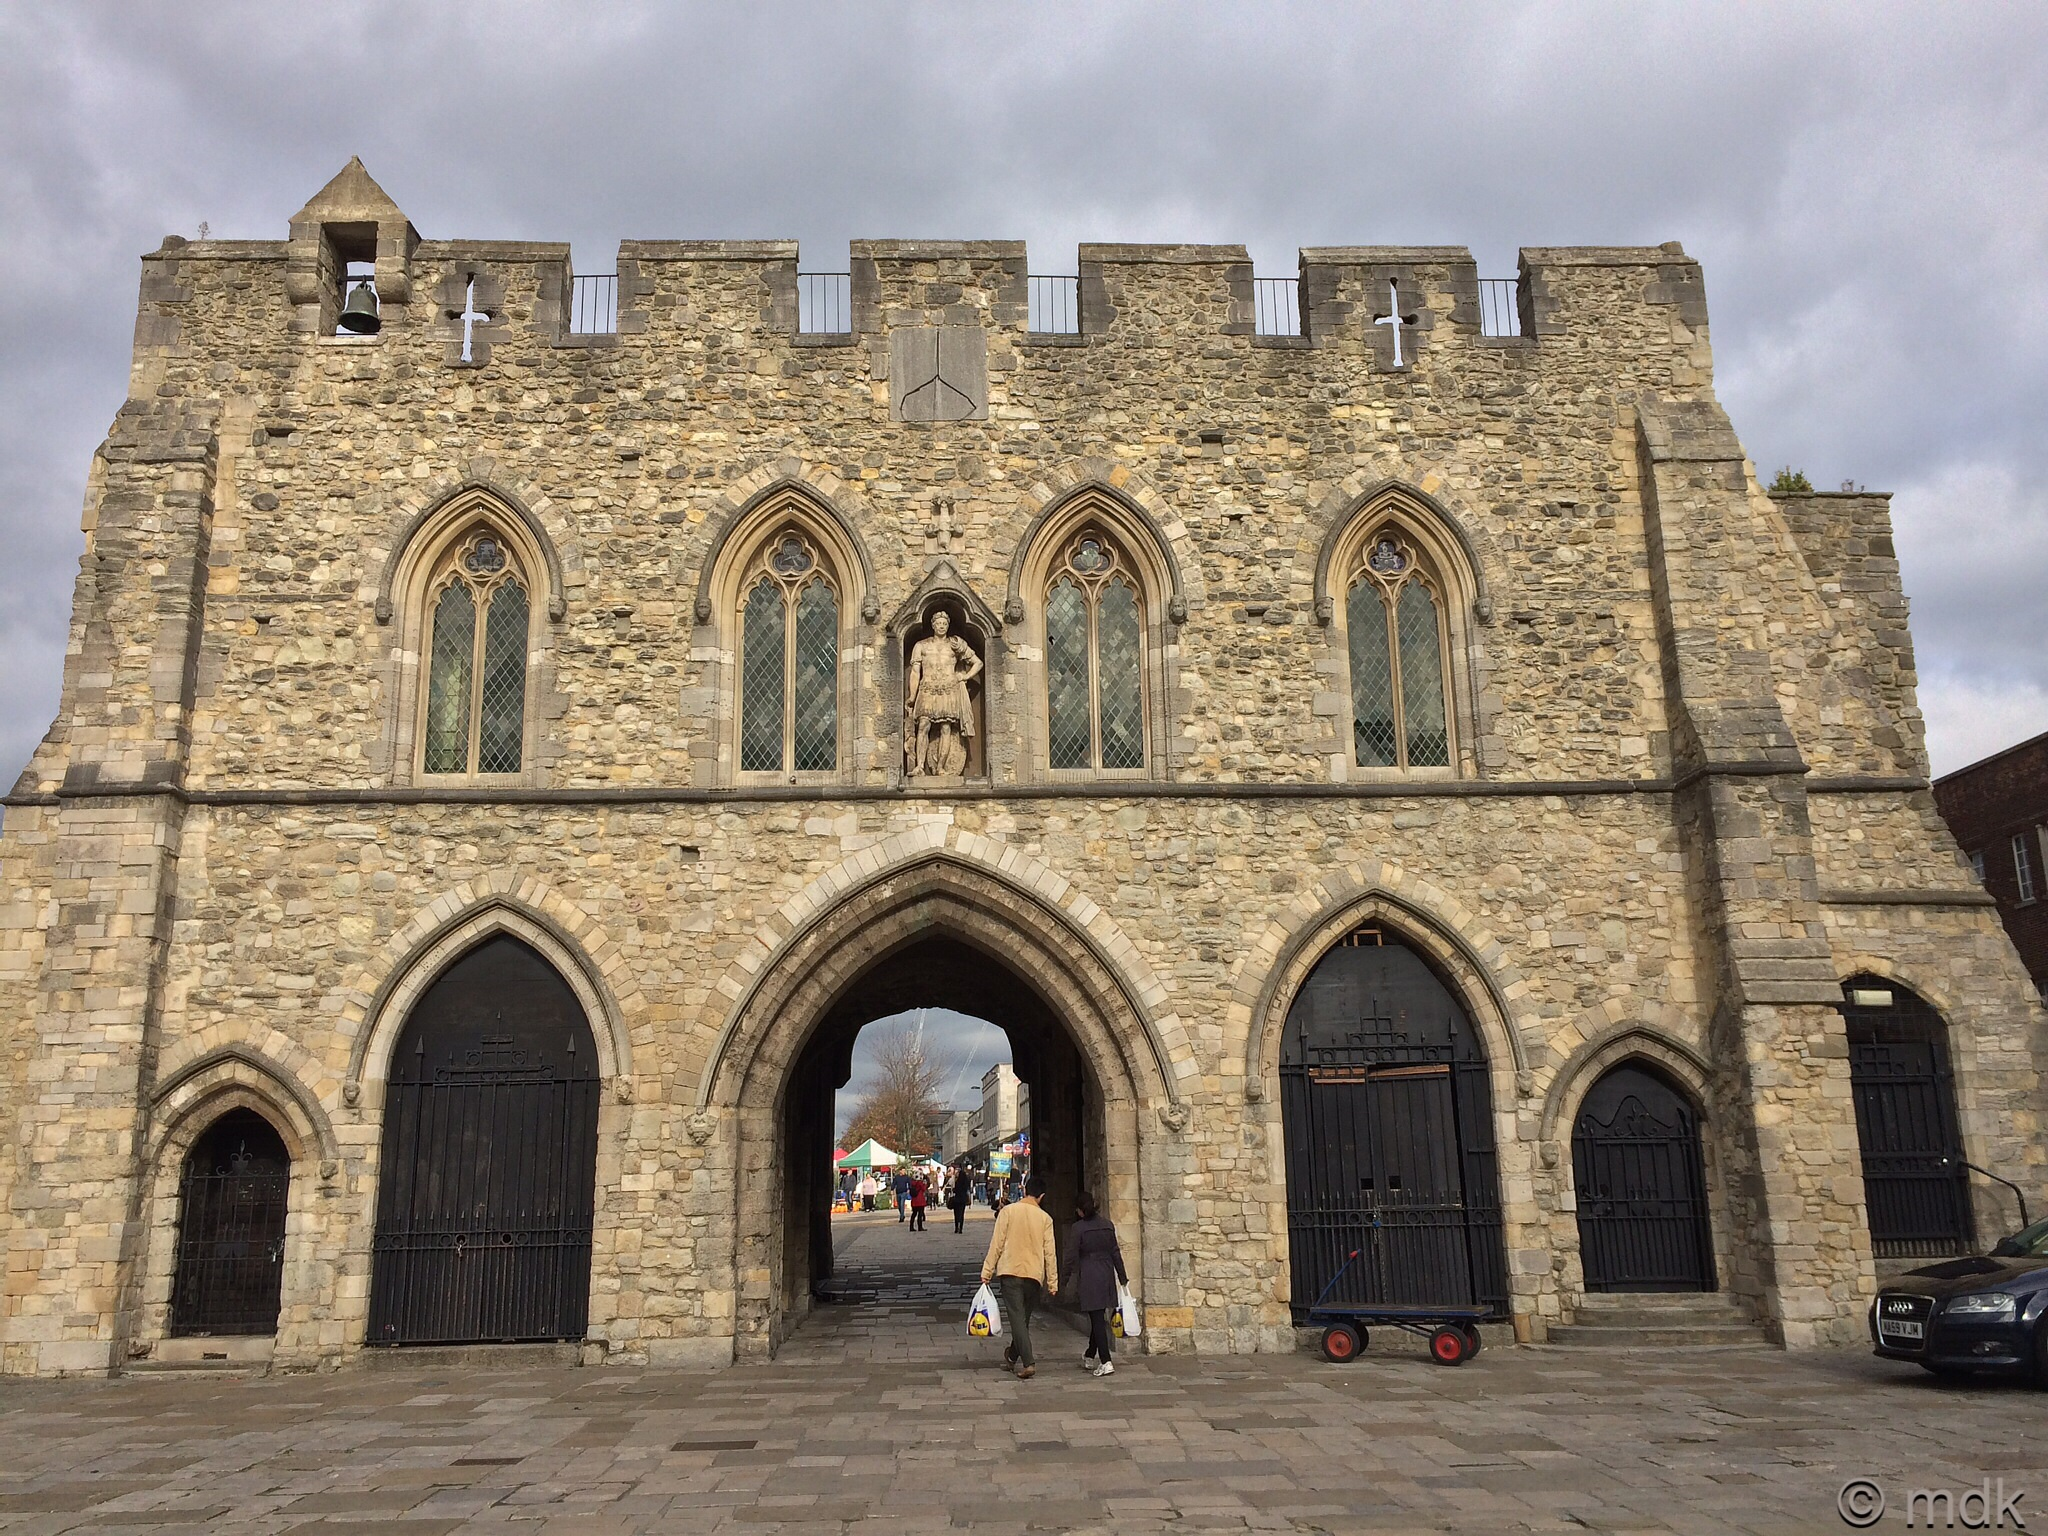 The Bargate from inside the old town